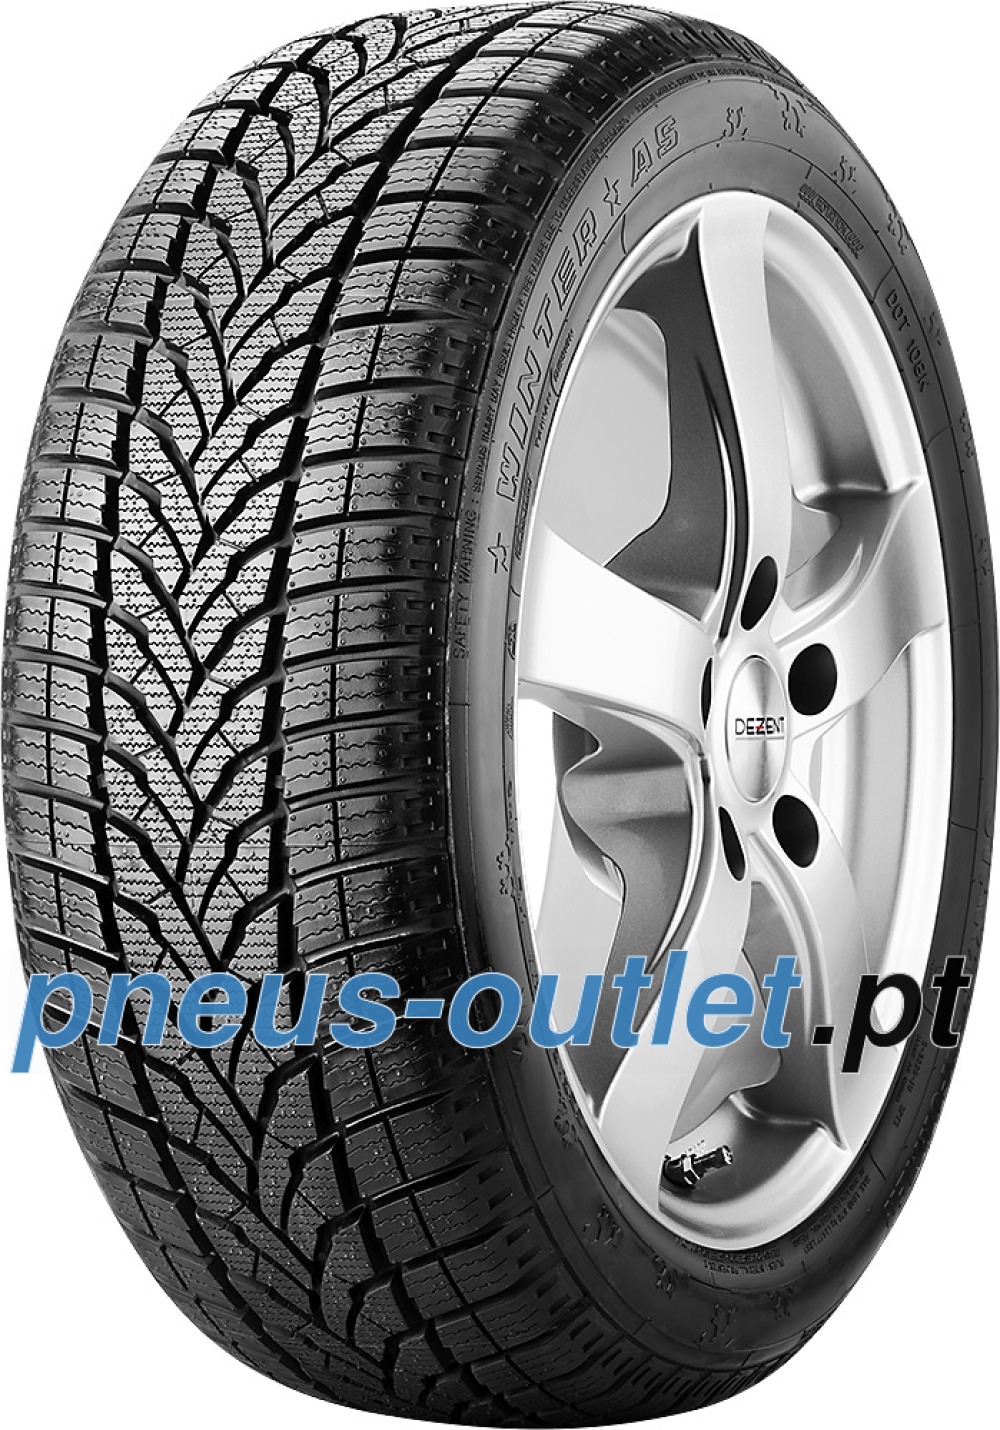 Star Performer SPTS AS ( 155/70 R13 79T XL )